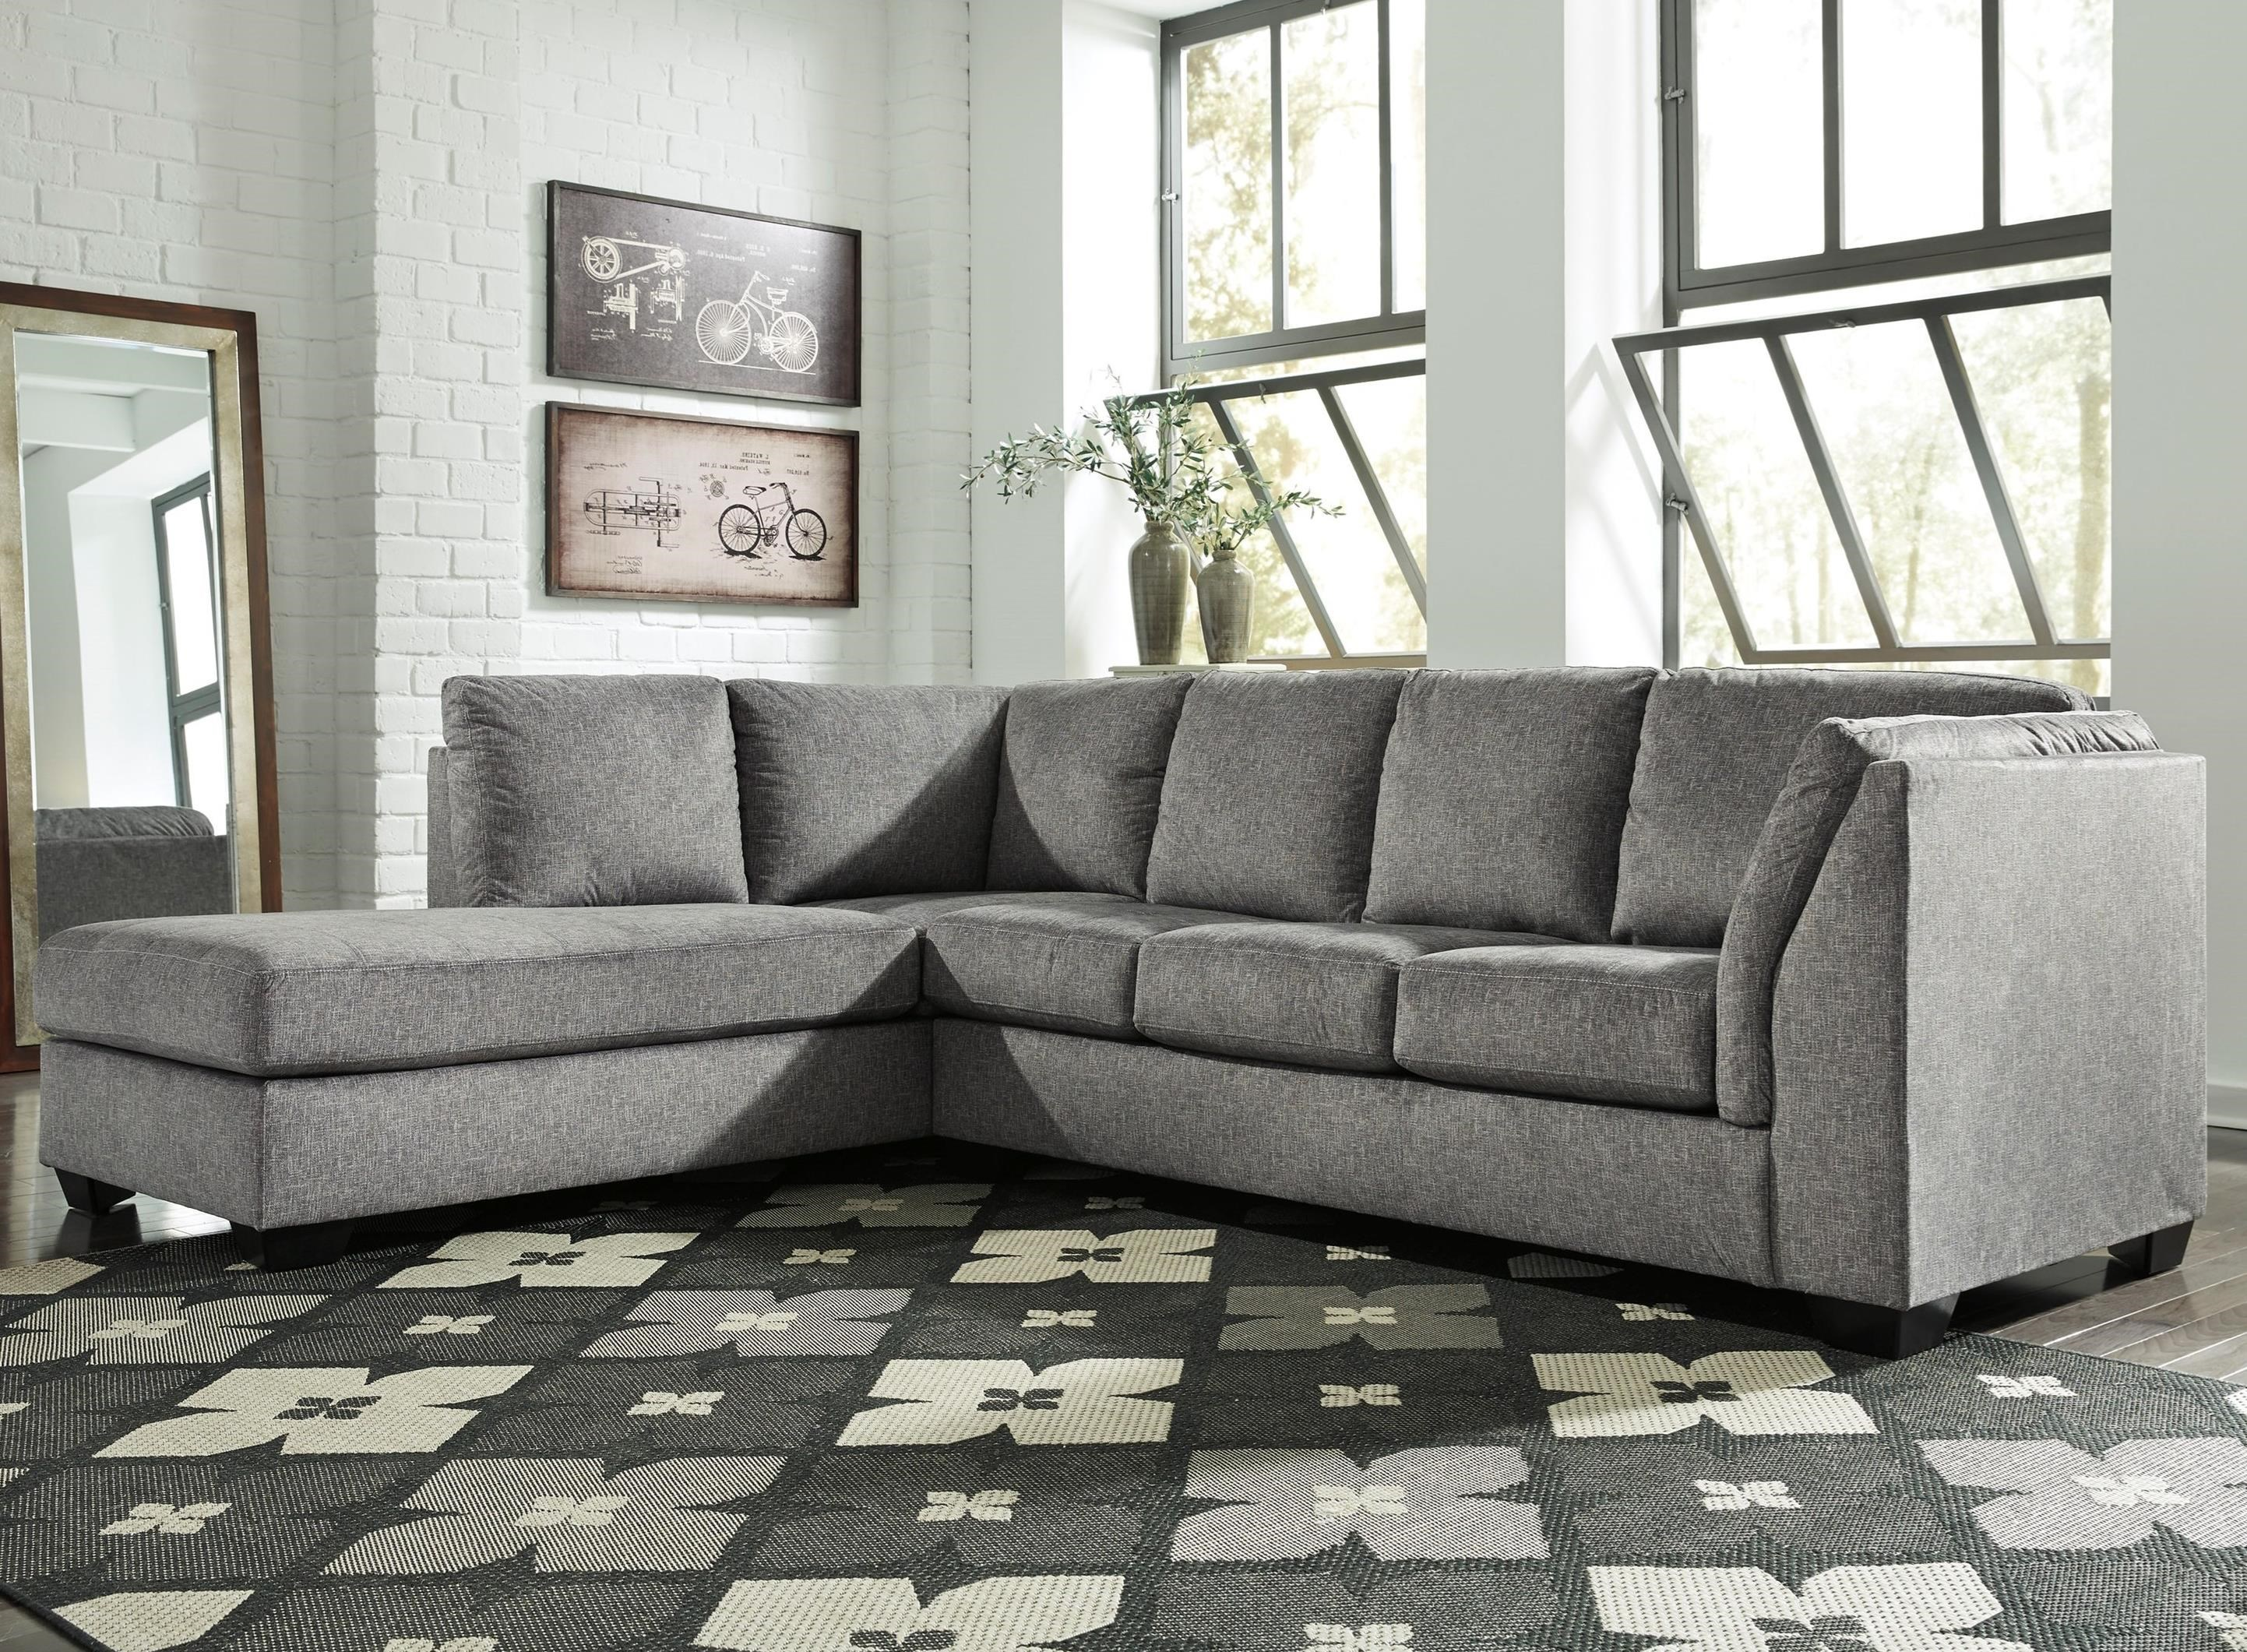 Beau Benchcraft By Ashley Belcastel2 Piece Sectional With Chaise ...